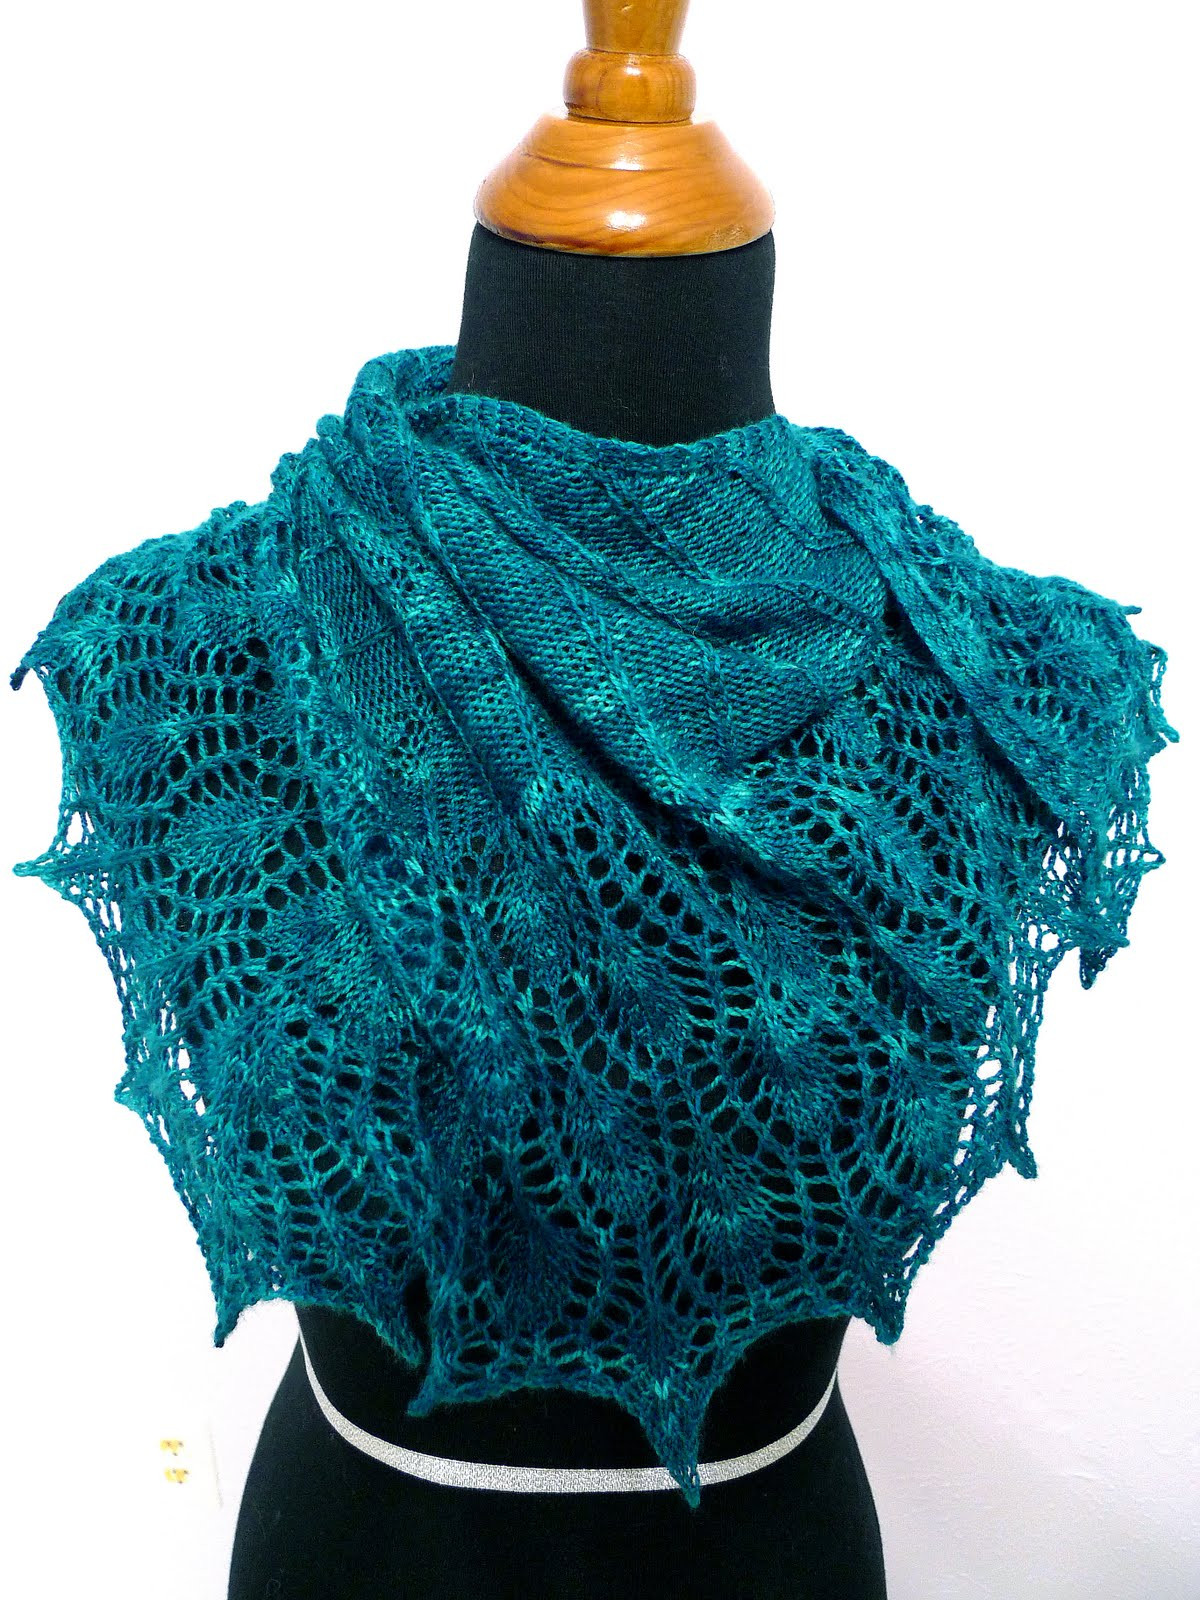 Awesome Knit Your Love Peacock Shawlette N Shawl Ebook Peacock Shawl Of Charming 44 Pictures Peacock Shawl